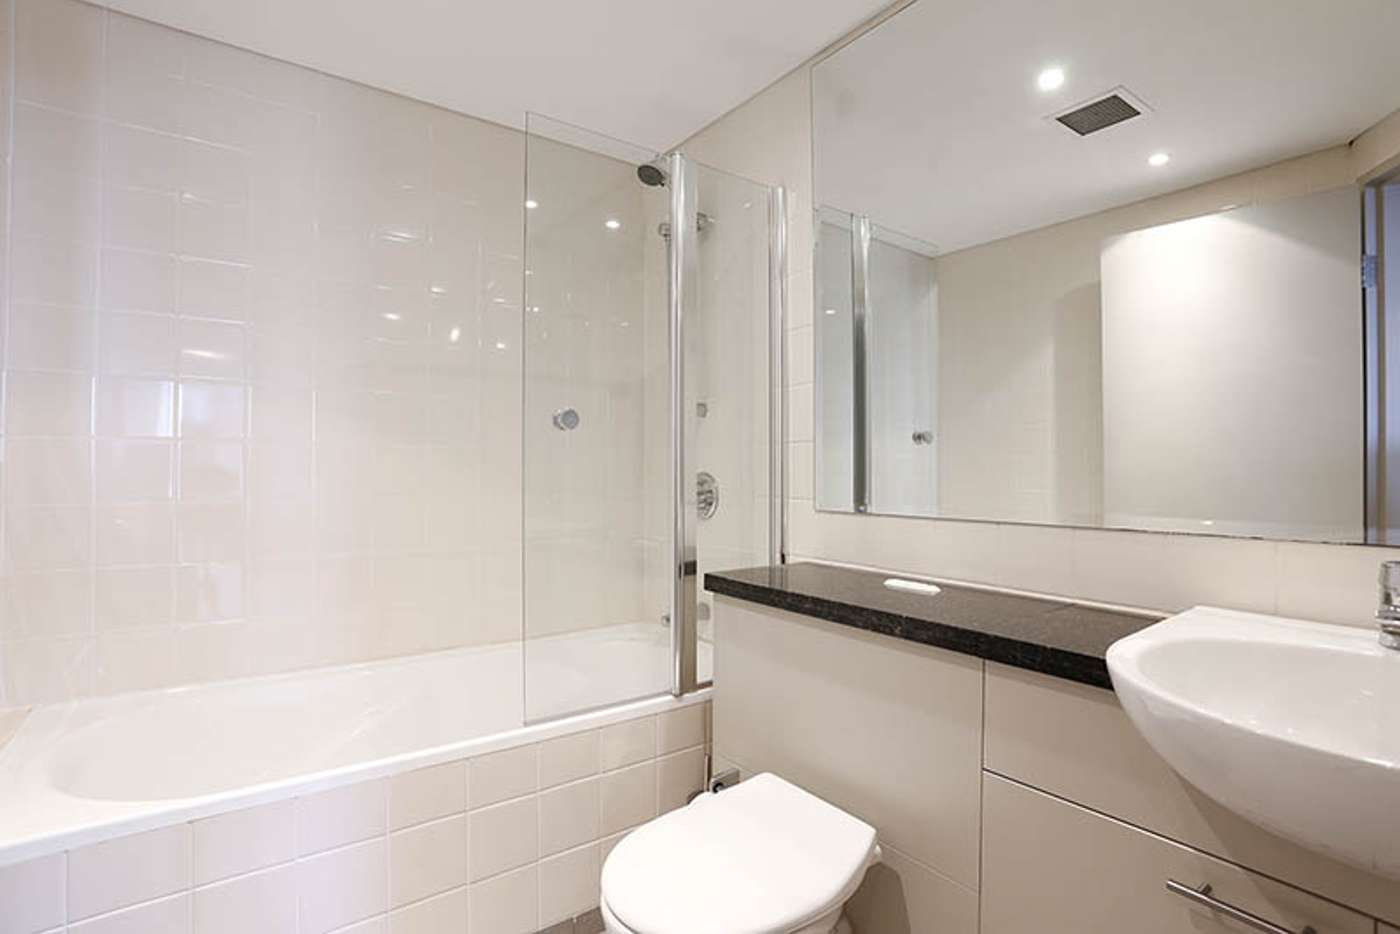 Fifth view of Homely apartment listing, 1803/3 Herbert Street, St Leonards NSW 2065